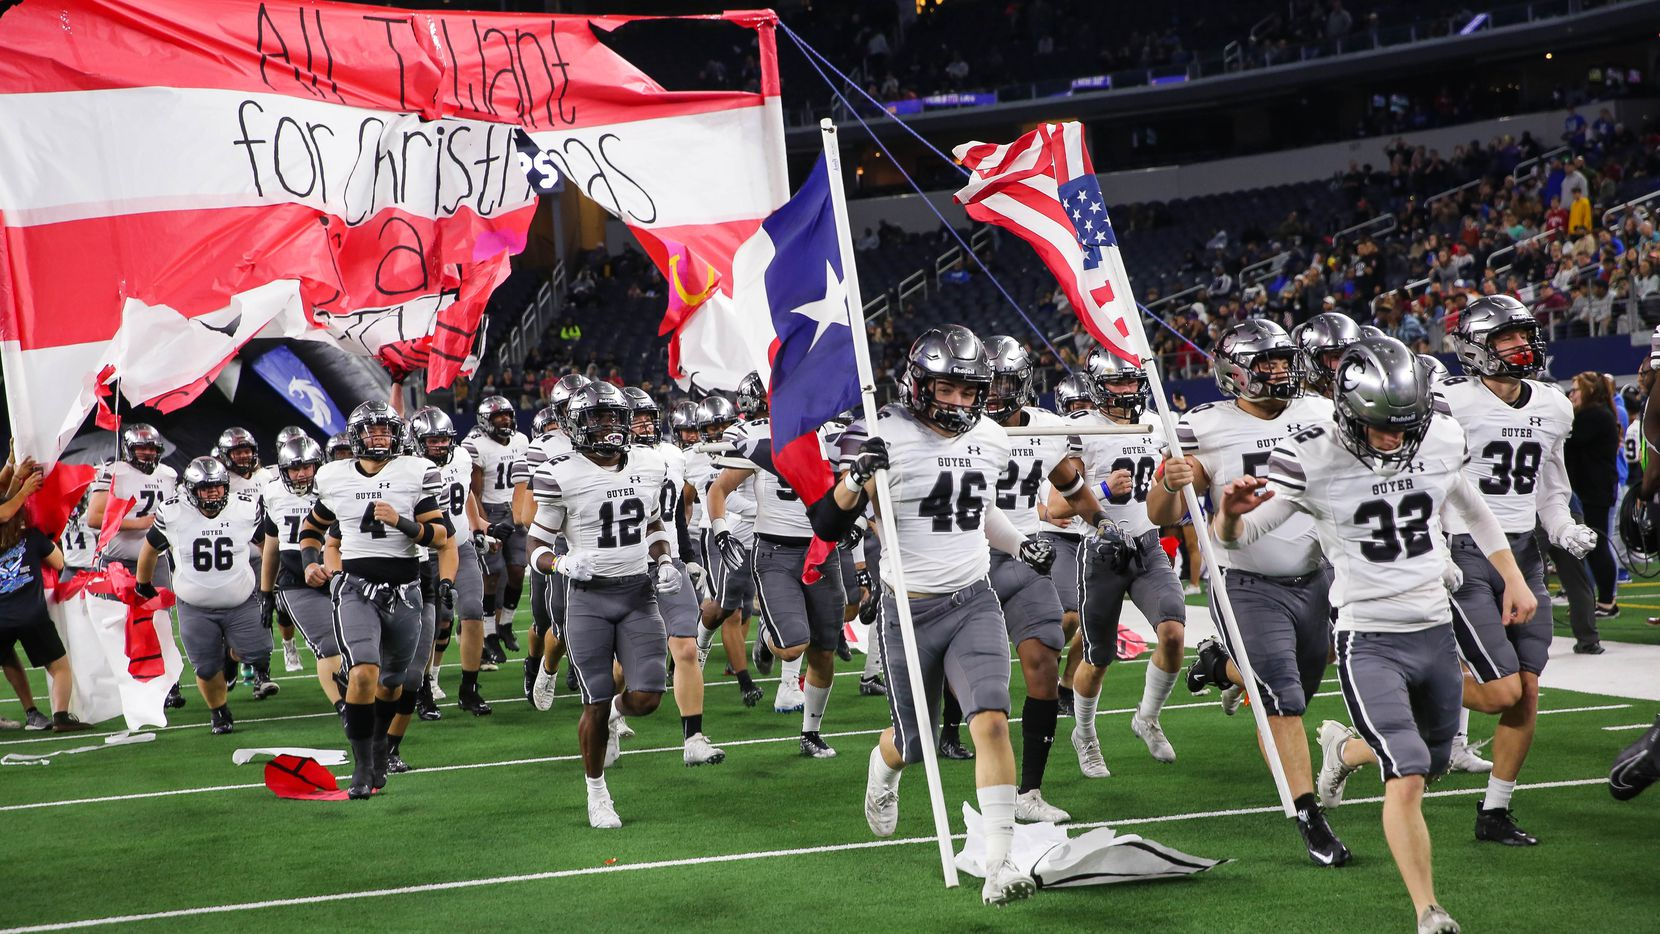 Denton Guyer runs out before a Class 6A Division II state championship game against Austin Westlake at the AT&T Stadium in Arlington, on Saturday, December 21, 2019.